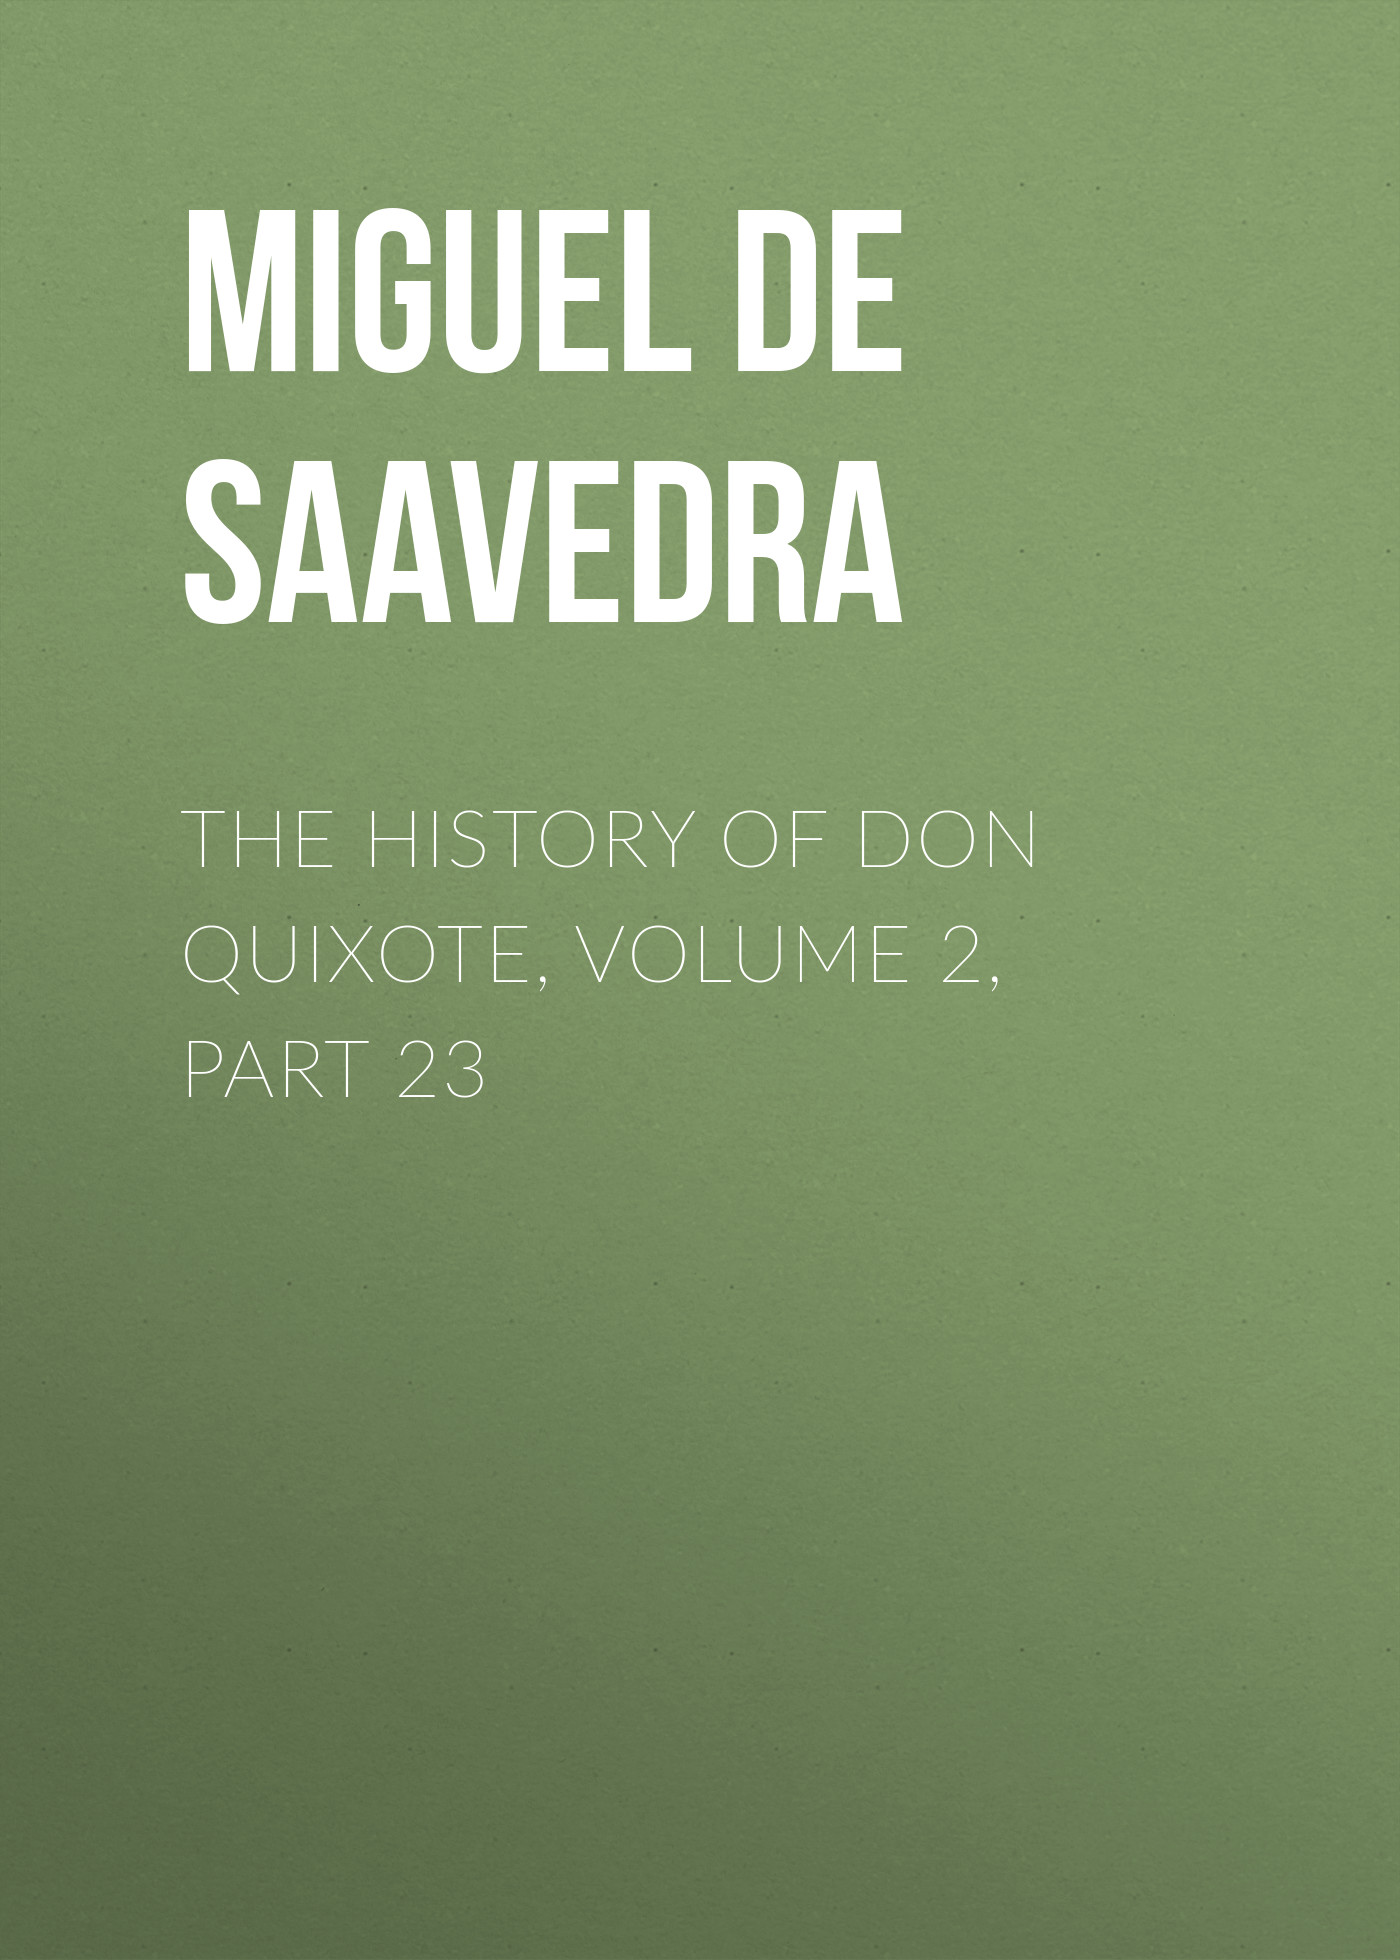 the history of don quixote volume 2 part 23